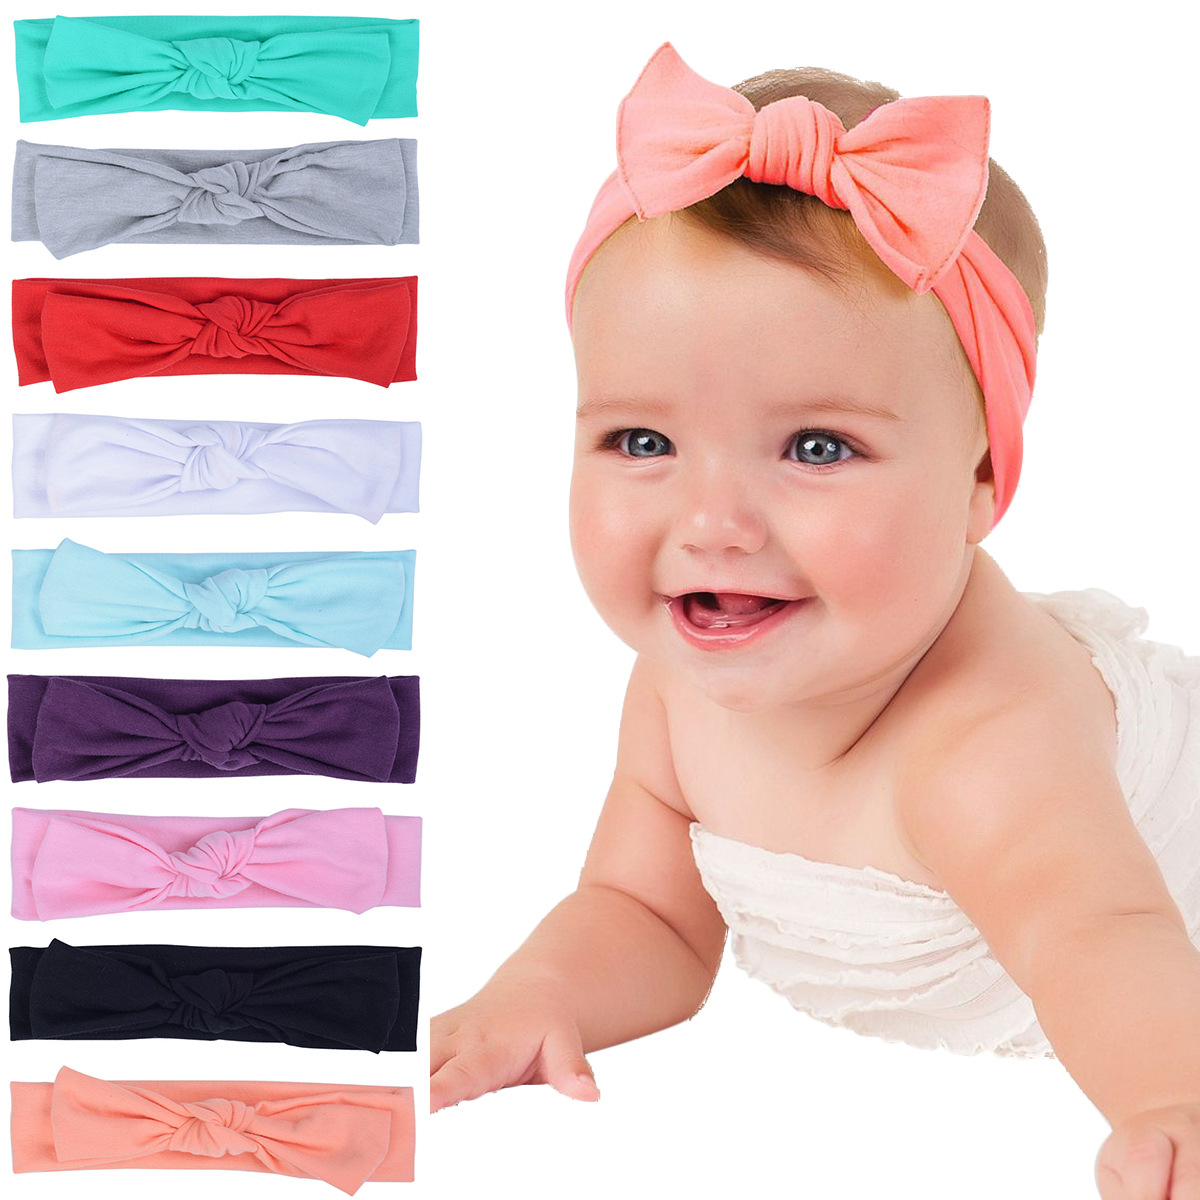 2017 Rushed Baby Girls Headbands Solid Autumn And Winter Baby Hair Ornaments New Sweet Children Bow Knot Cotton Tie 2017 new sweet baby girl dancing updo hair net snood children new hair decoration top sell dance ballet hair ornaments